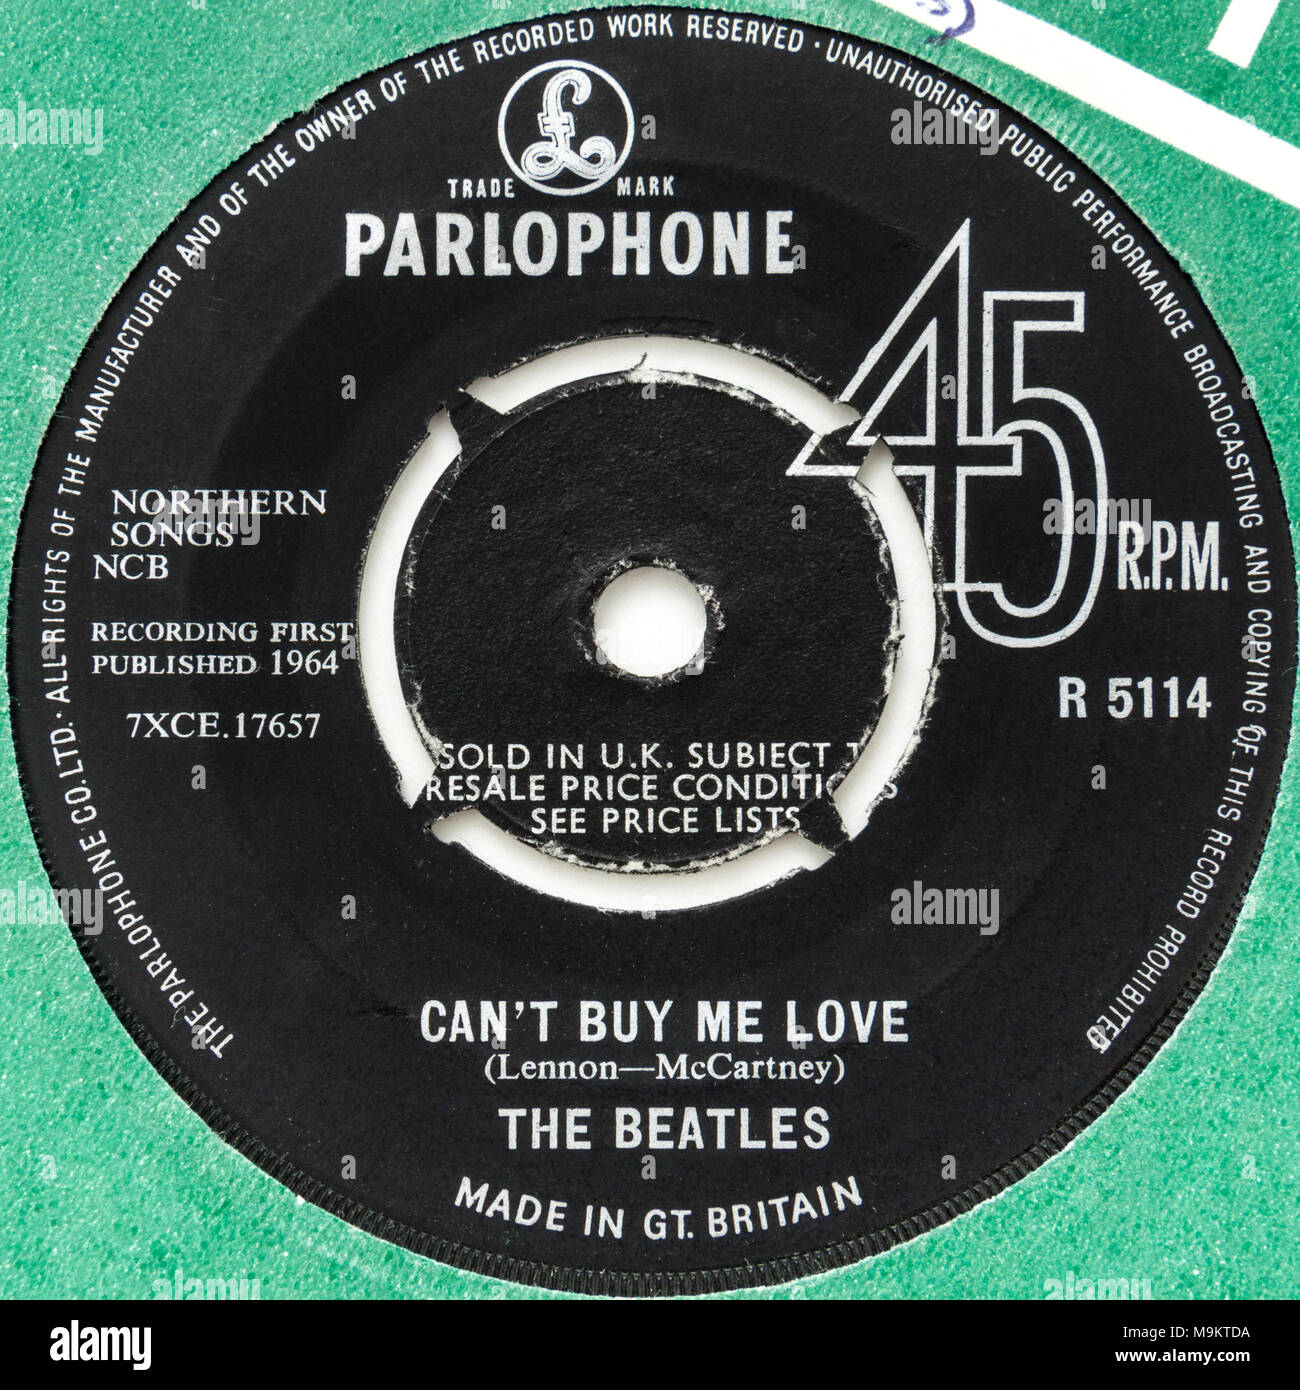 1964 original 45rpm single of 'Can't Buy Me Love' by The Beatles (Parlophone R5114) - Stock Image